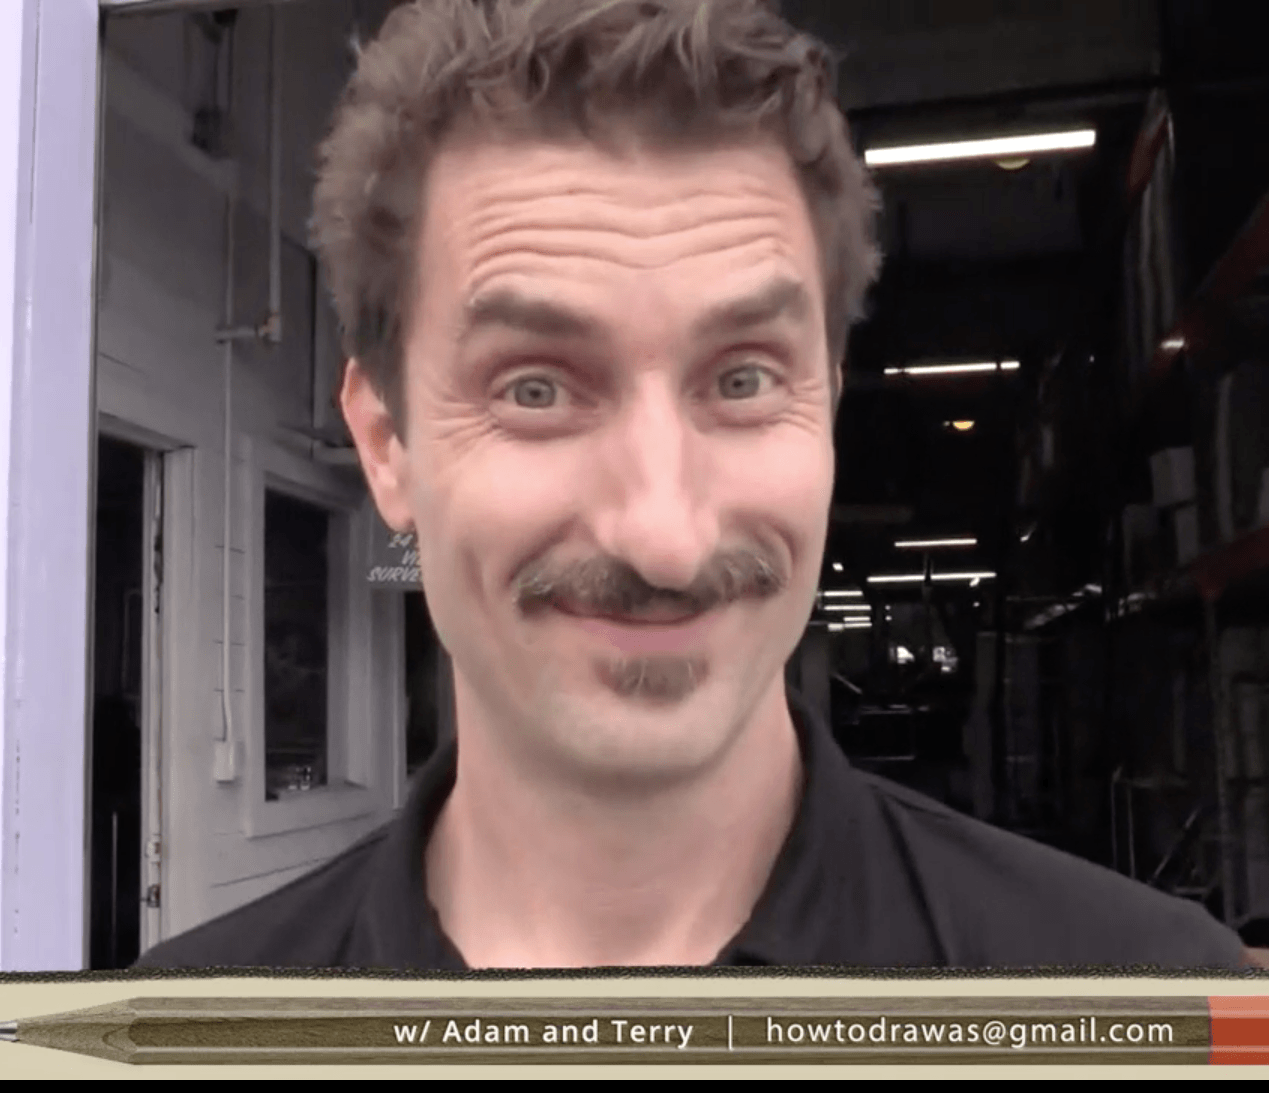 Butt Pencils, DIY, and Frank Zappa: A Live Stream of How To Draw at Danger